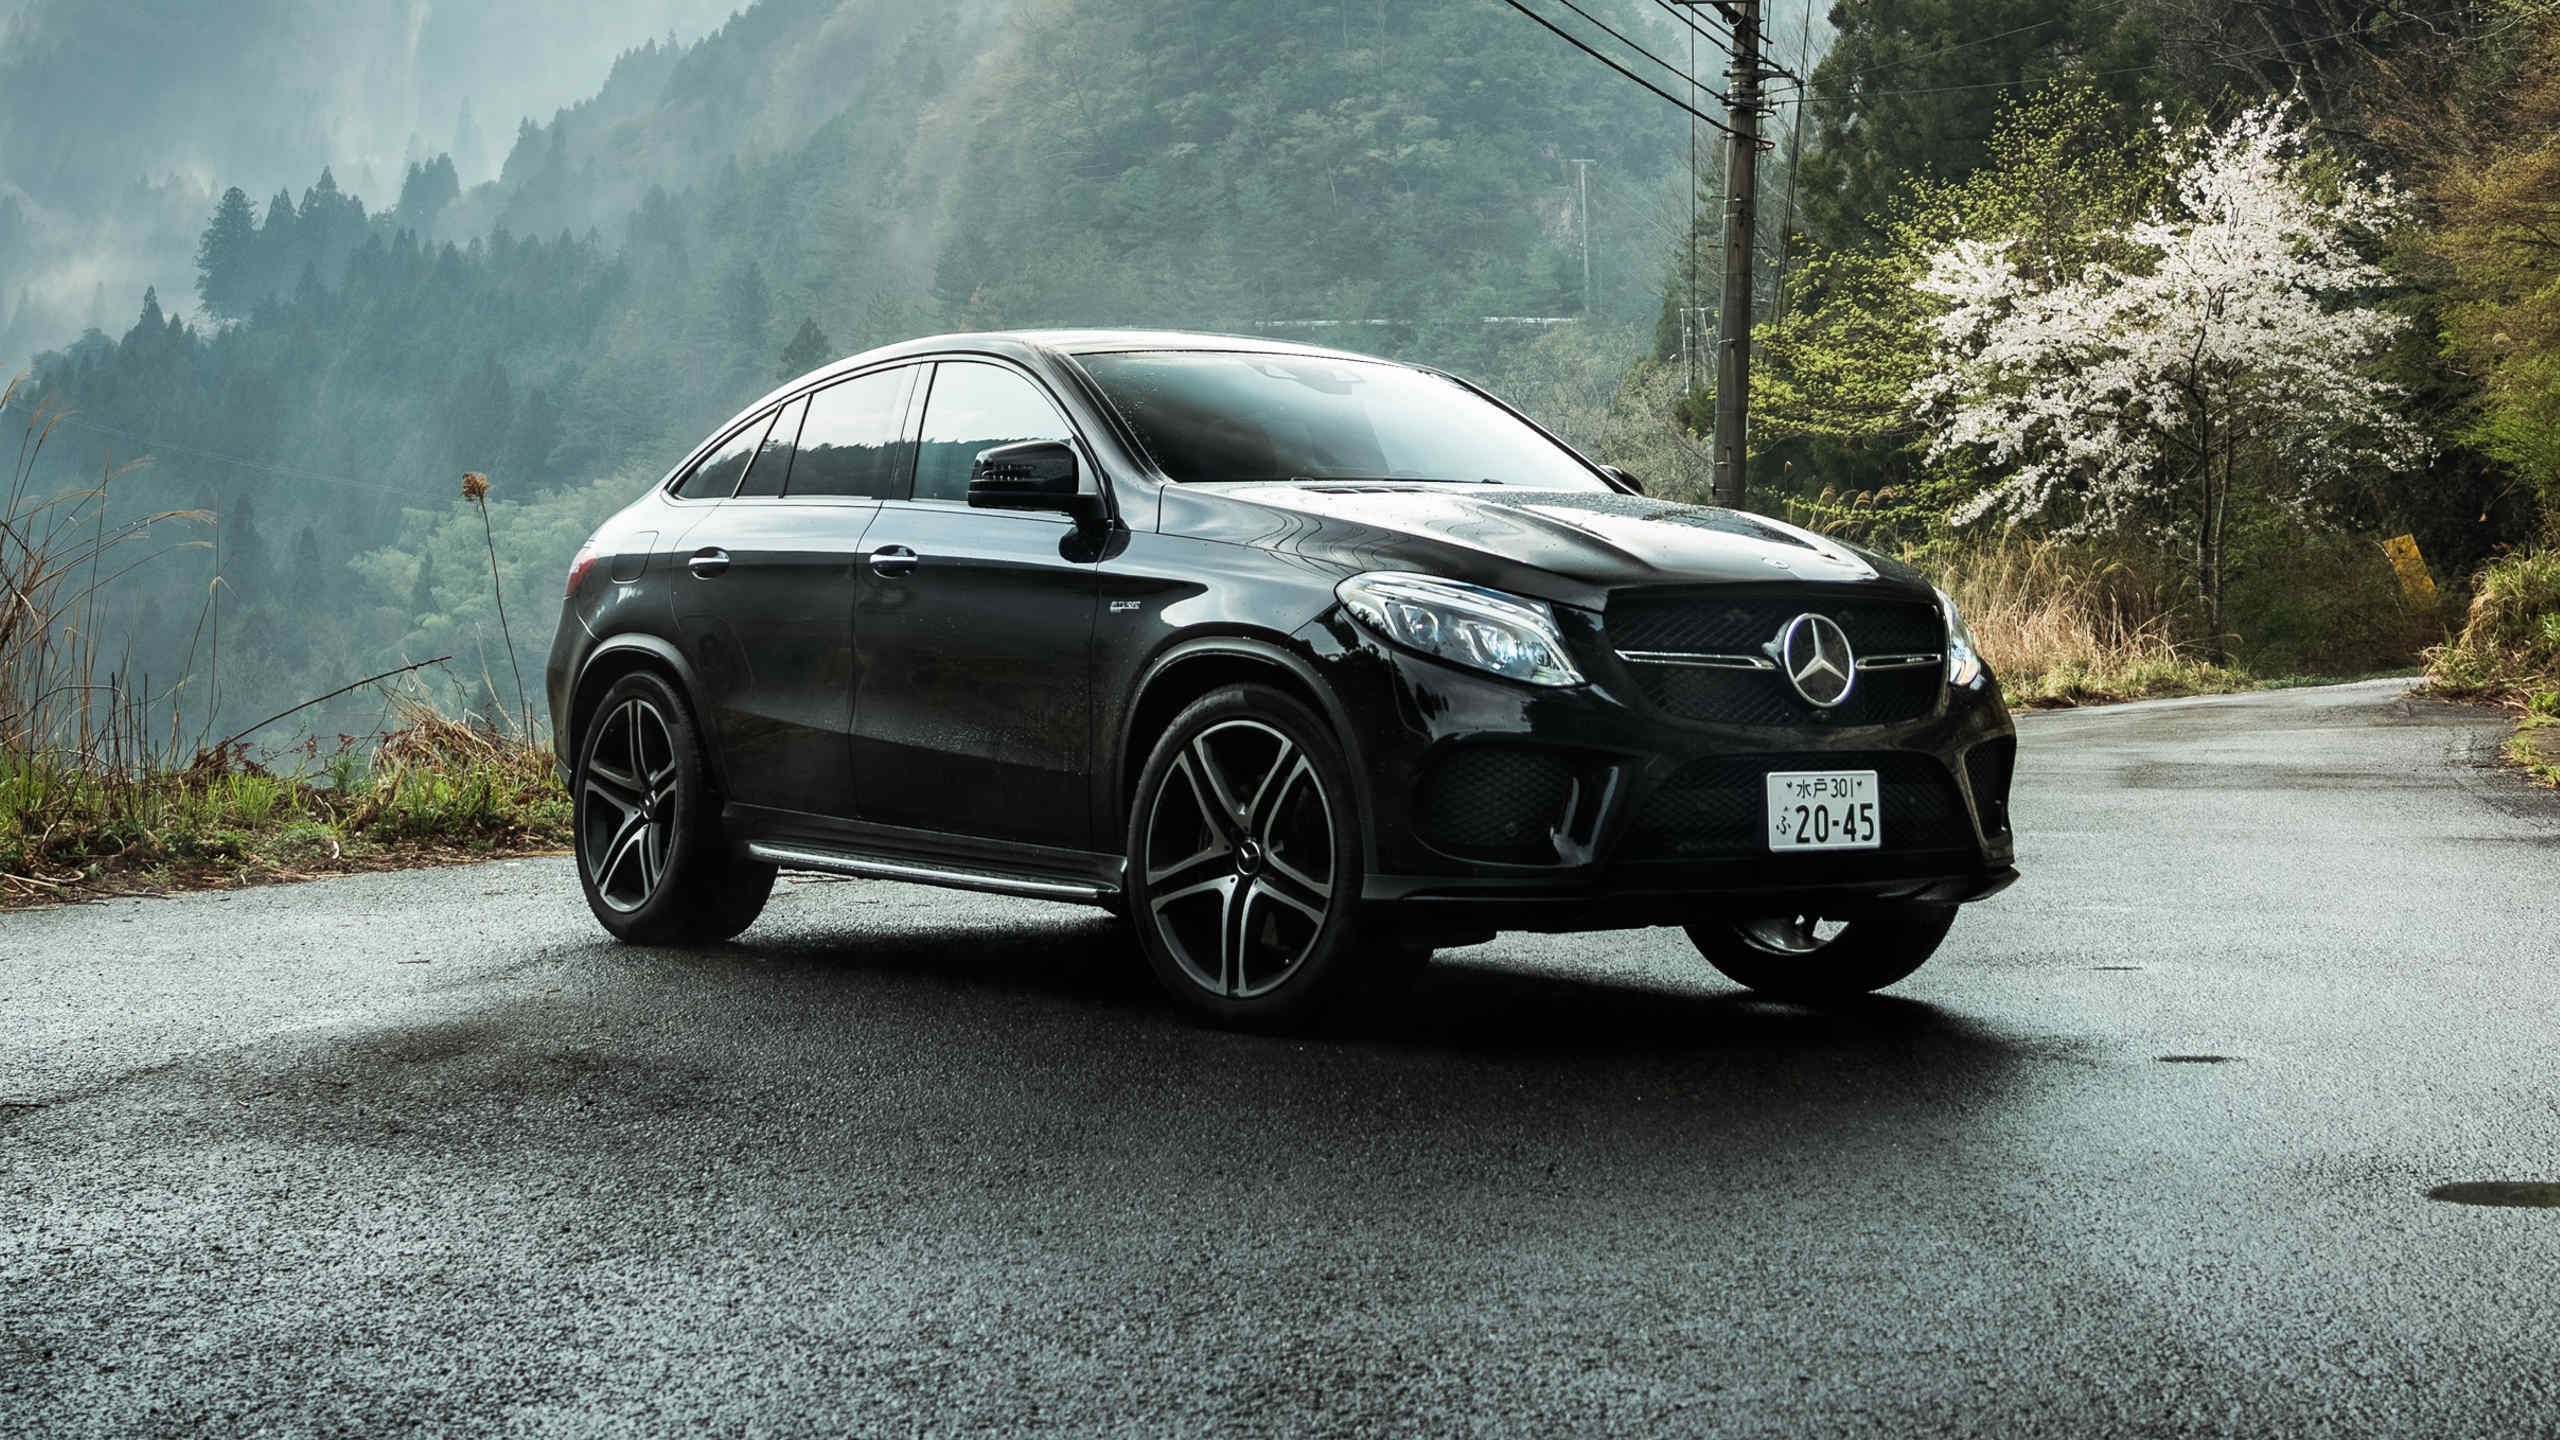 Mercedes Benz Gle Wallpapers Top Free Mercedes Benz Gle Backgrounds Wallpaperaccess